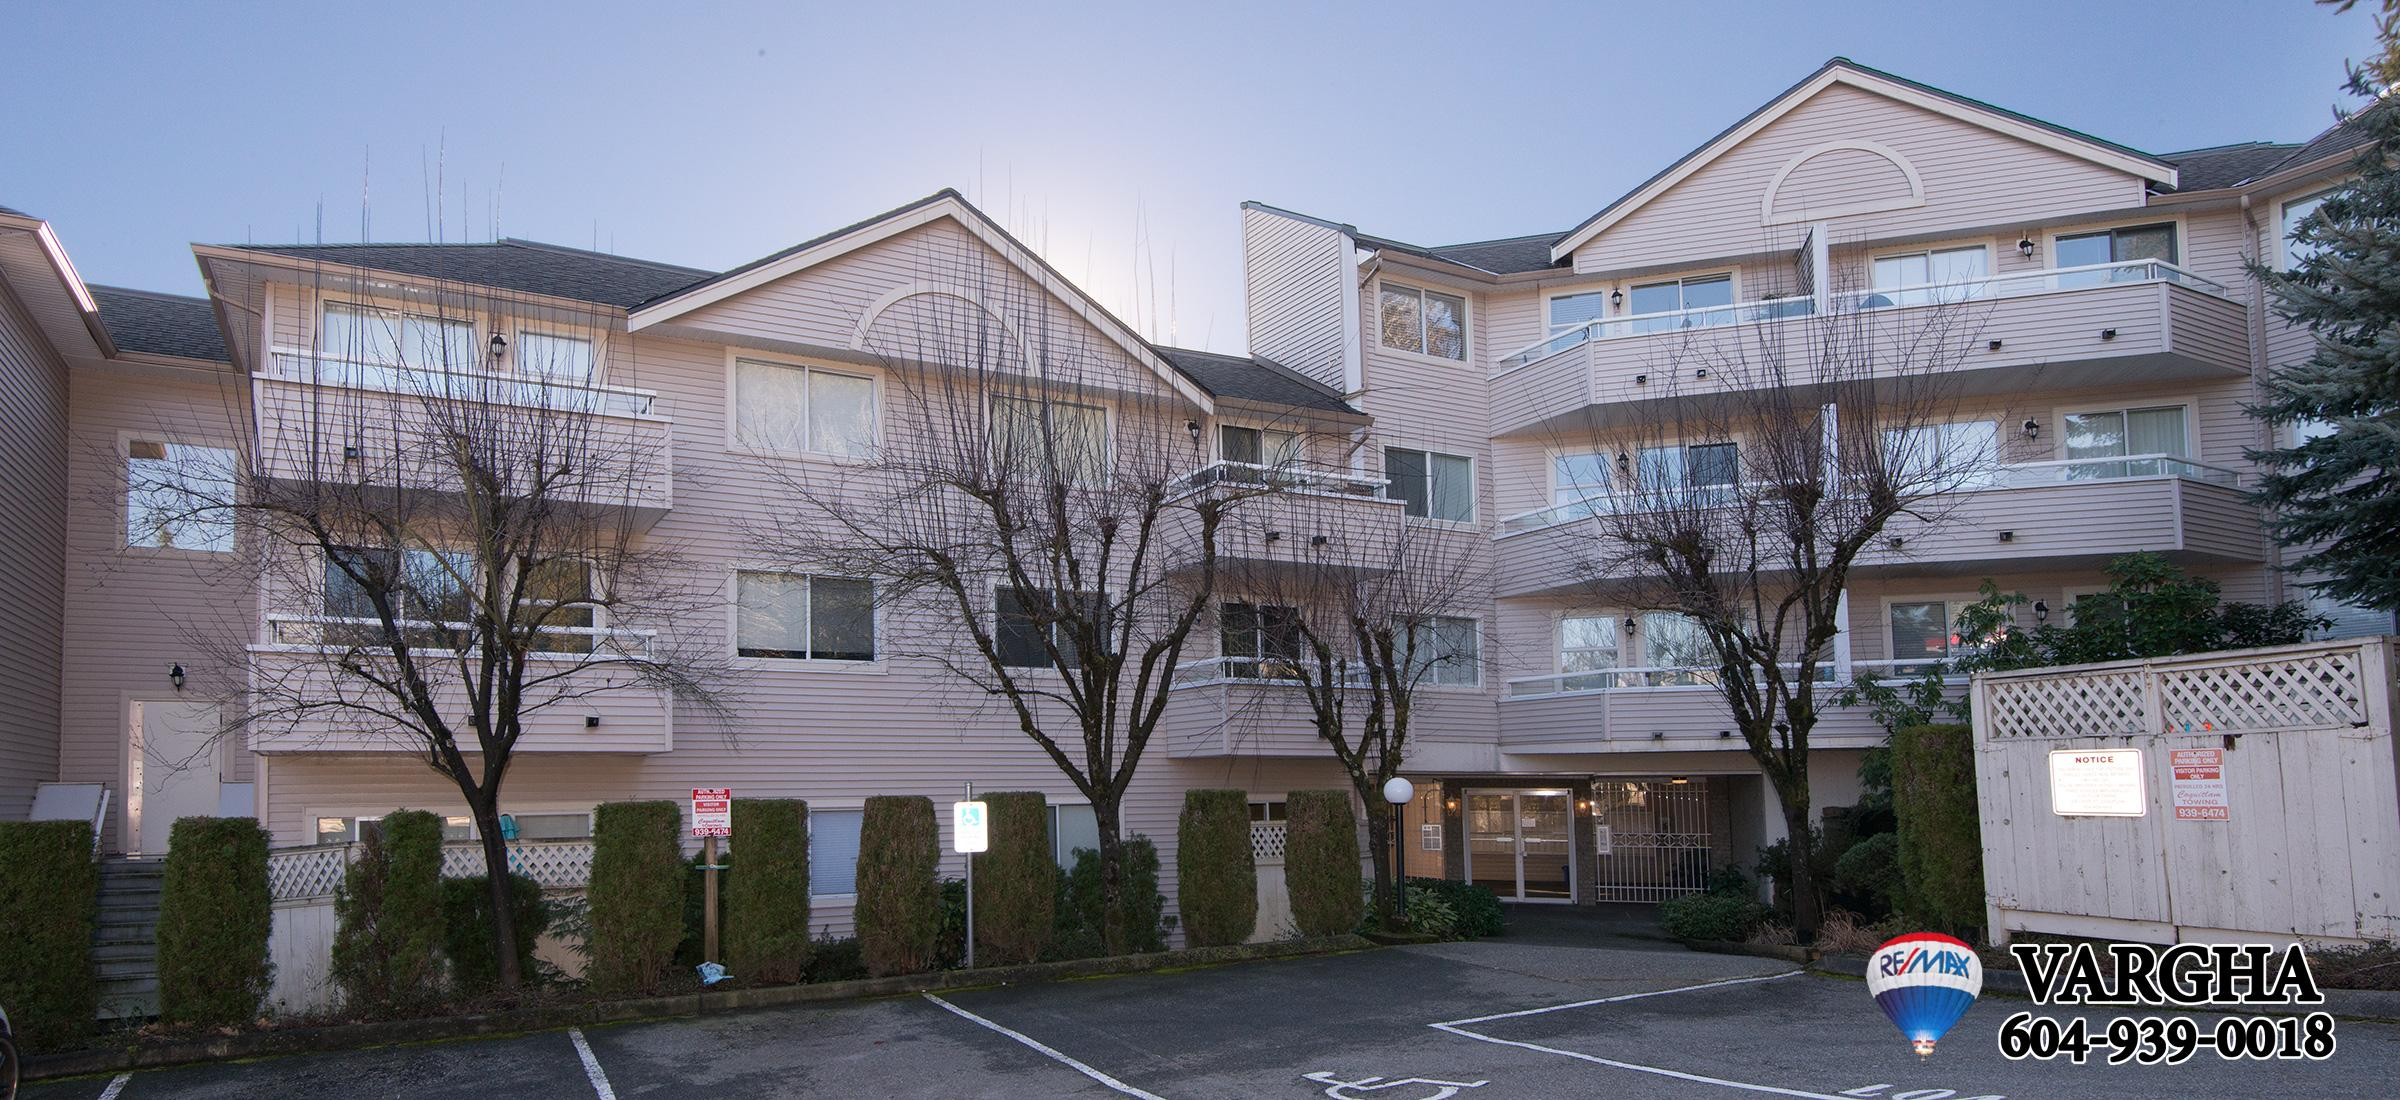 211 - 450 Bromley Street, Coquitlam East, Coquitlam